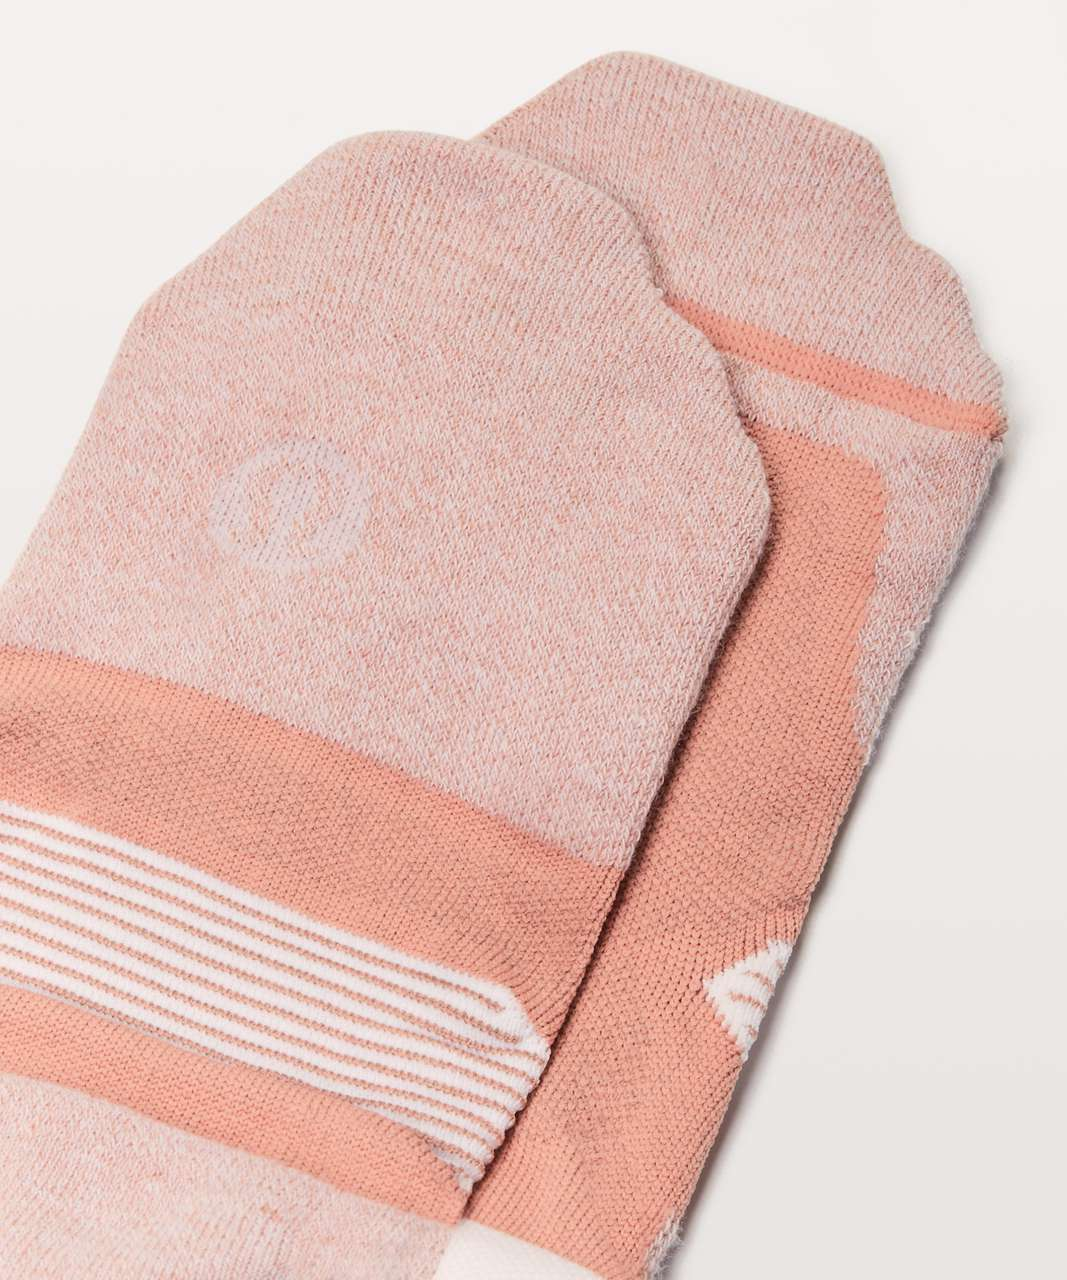 Lululemon Speed Sock *Silver - Cameo / White